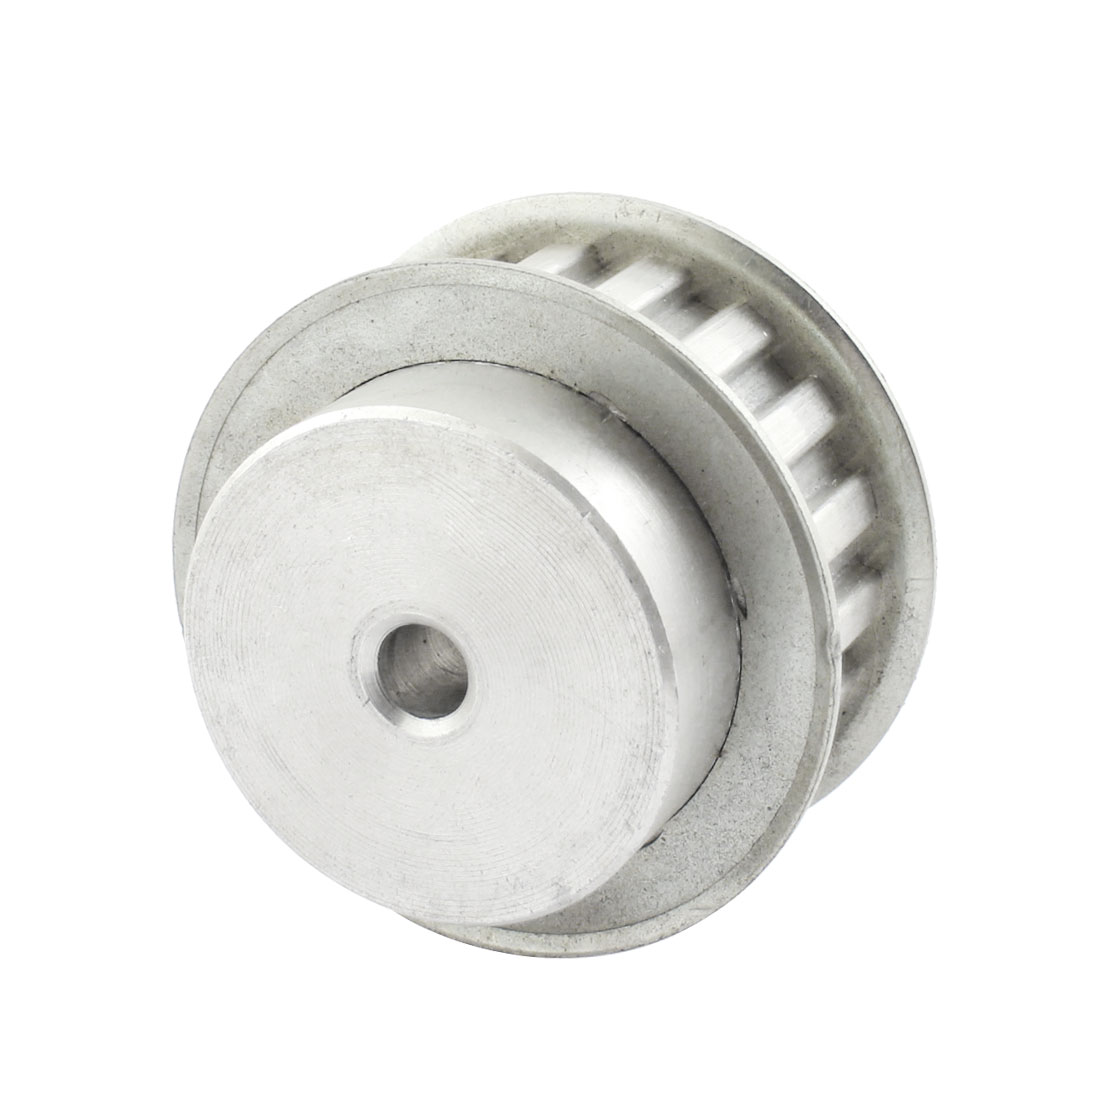 Aluminum Alloy 18 Teeth 8mm Bore Dia Double Flanged Motor Drive Synchronous Timing Pulley